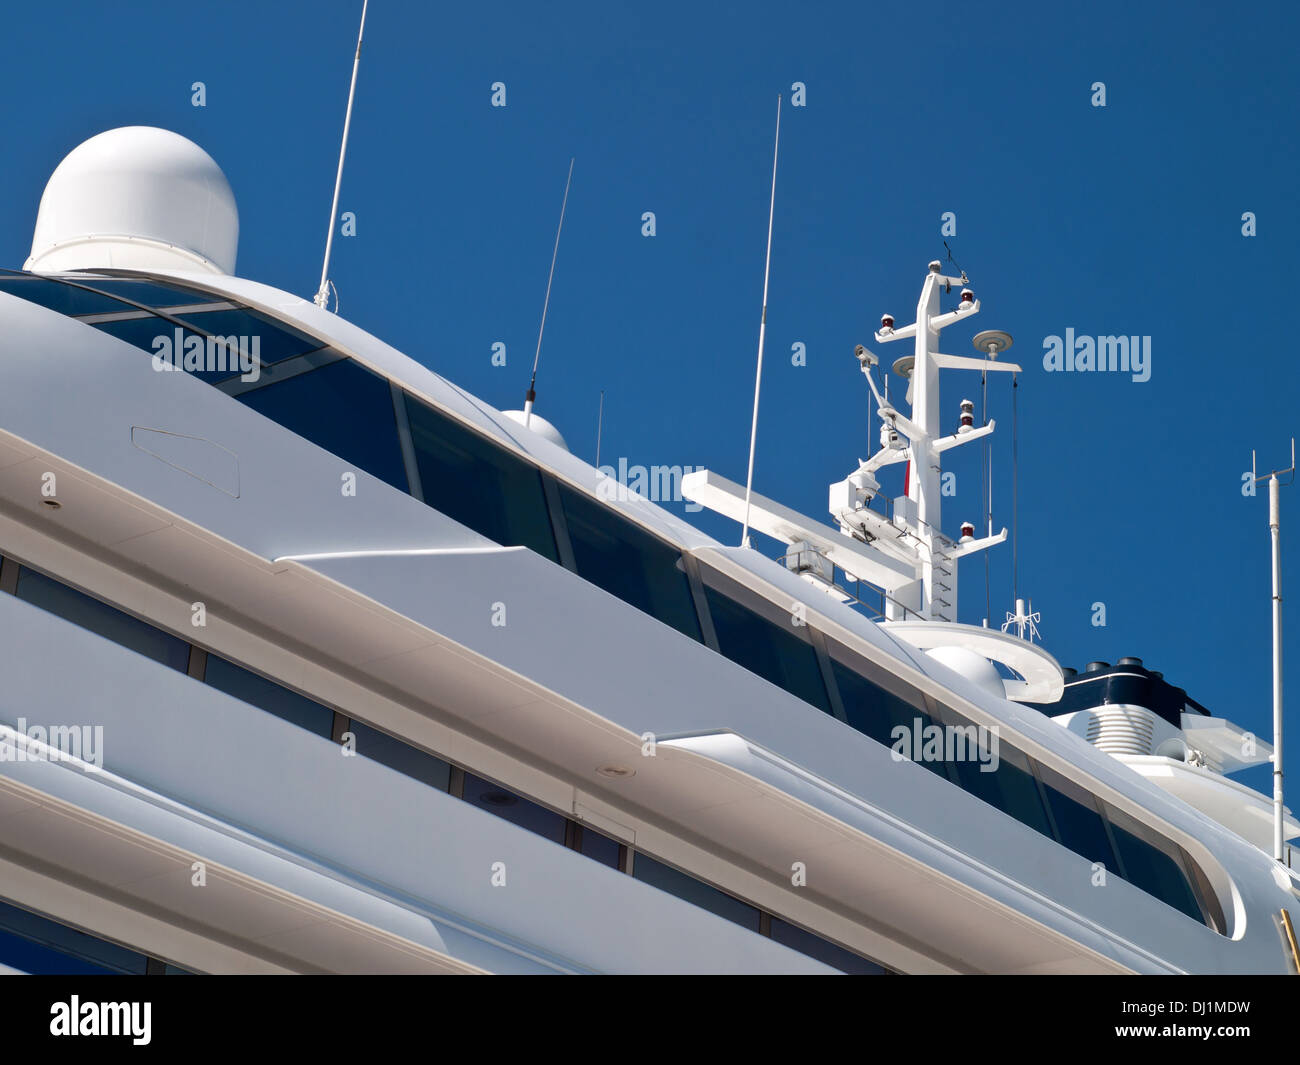 detail of upper deck and main deck on modern yacht - Stock Image